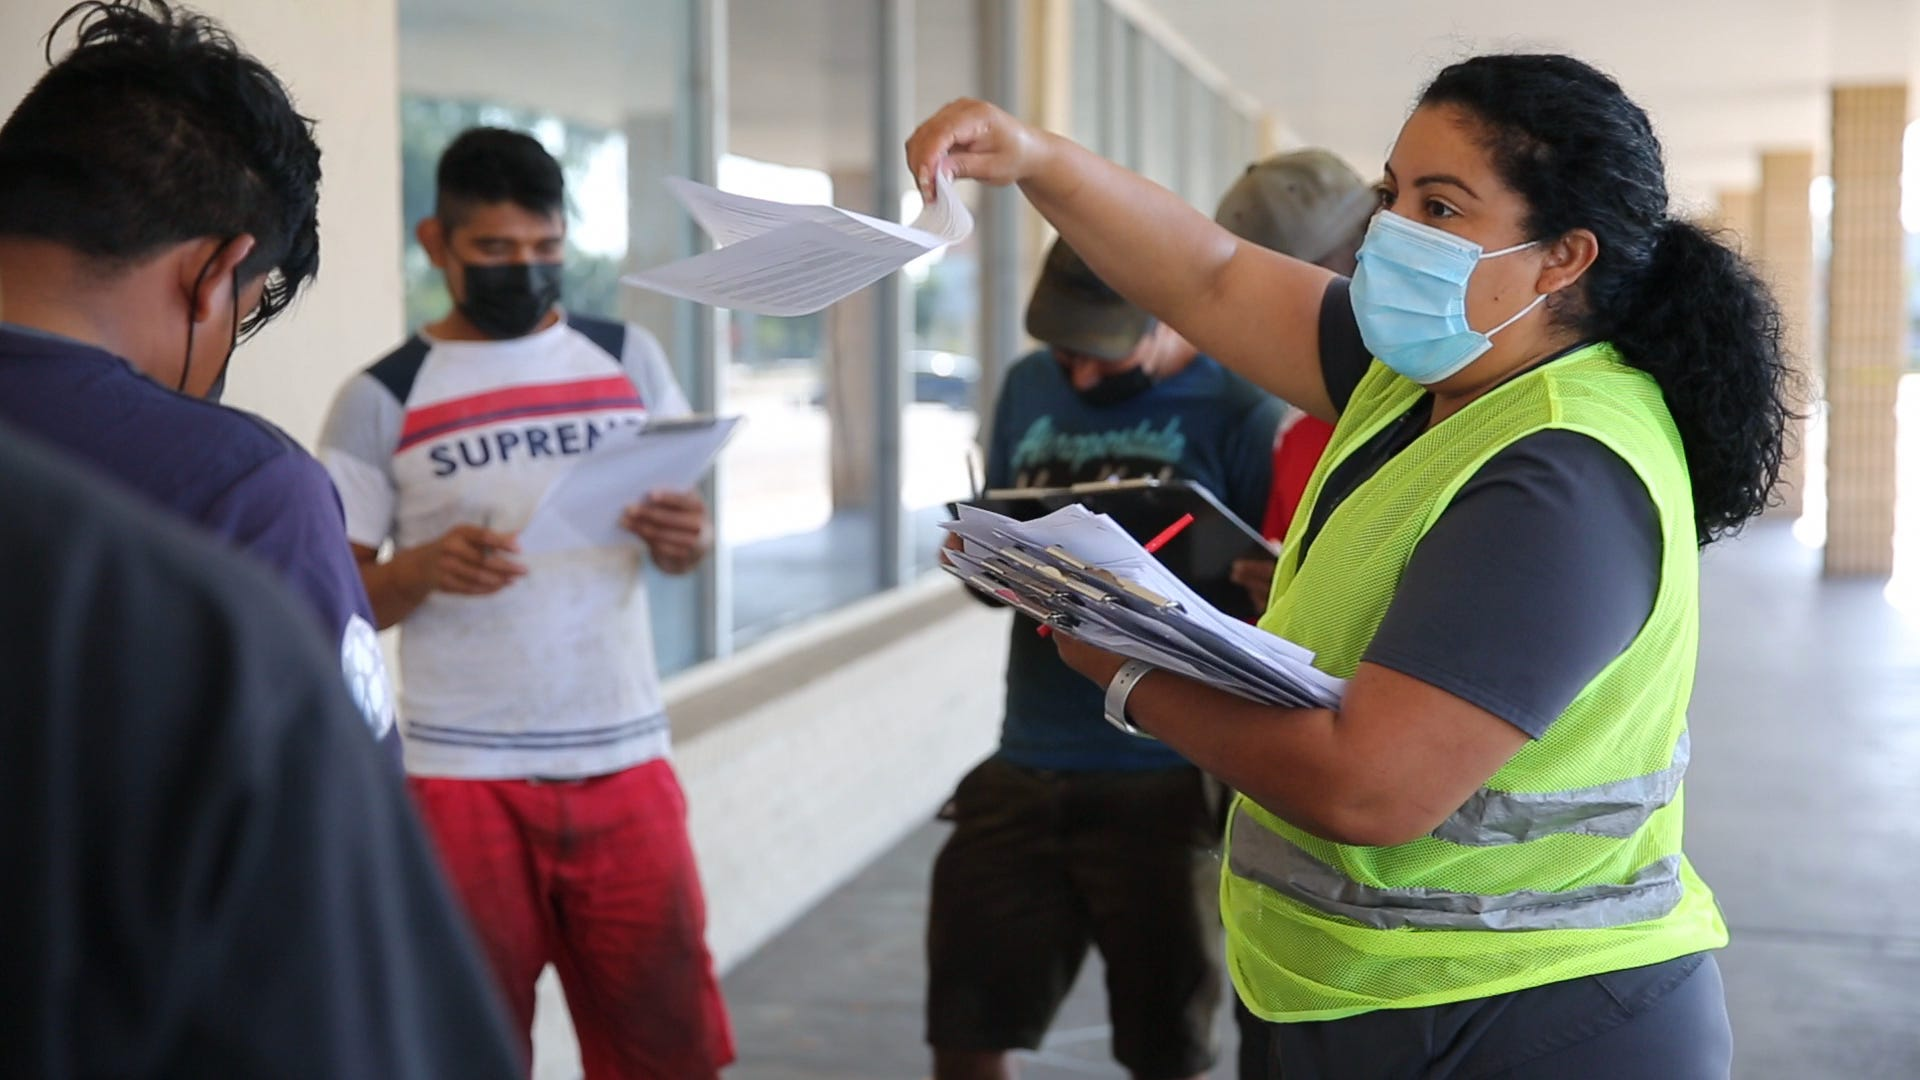 Midania Hinojosa helps a group of farmworkers with their paperwork while they wait in line during a vaccine clinic for farmworkers at the Florida Department of Health in Collier County site on Lake Trafford Road in Immokalee on Saturday, April 10, 2021.